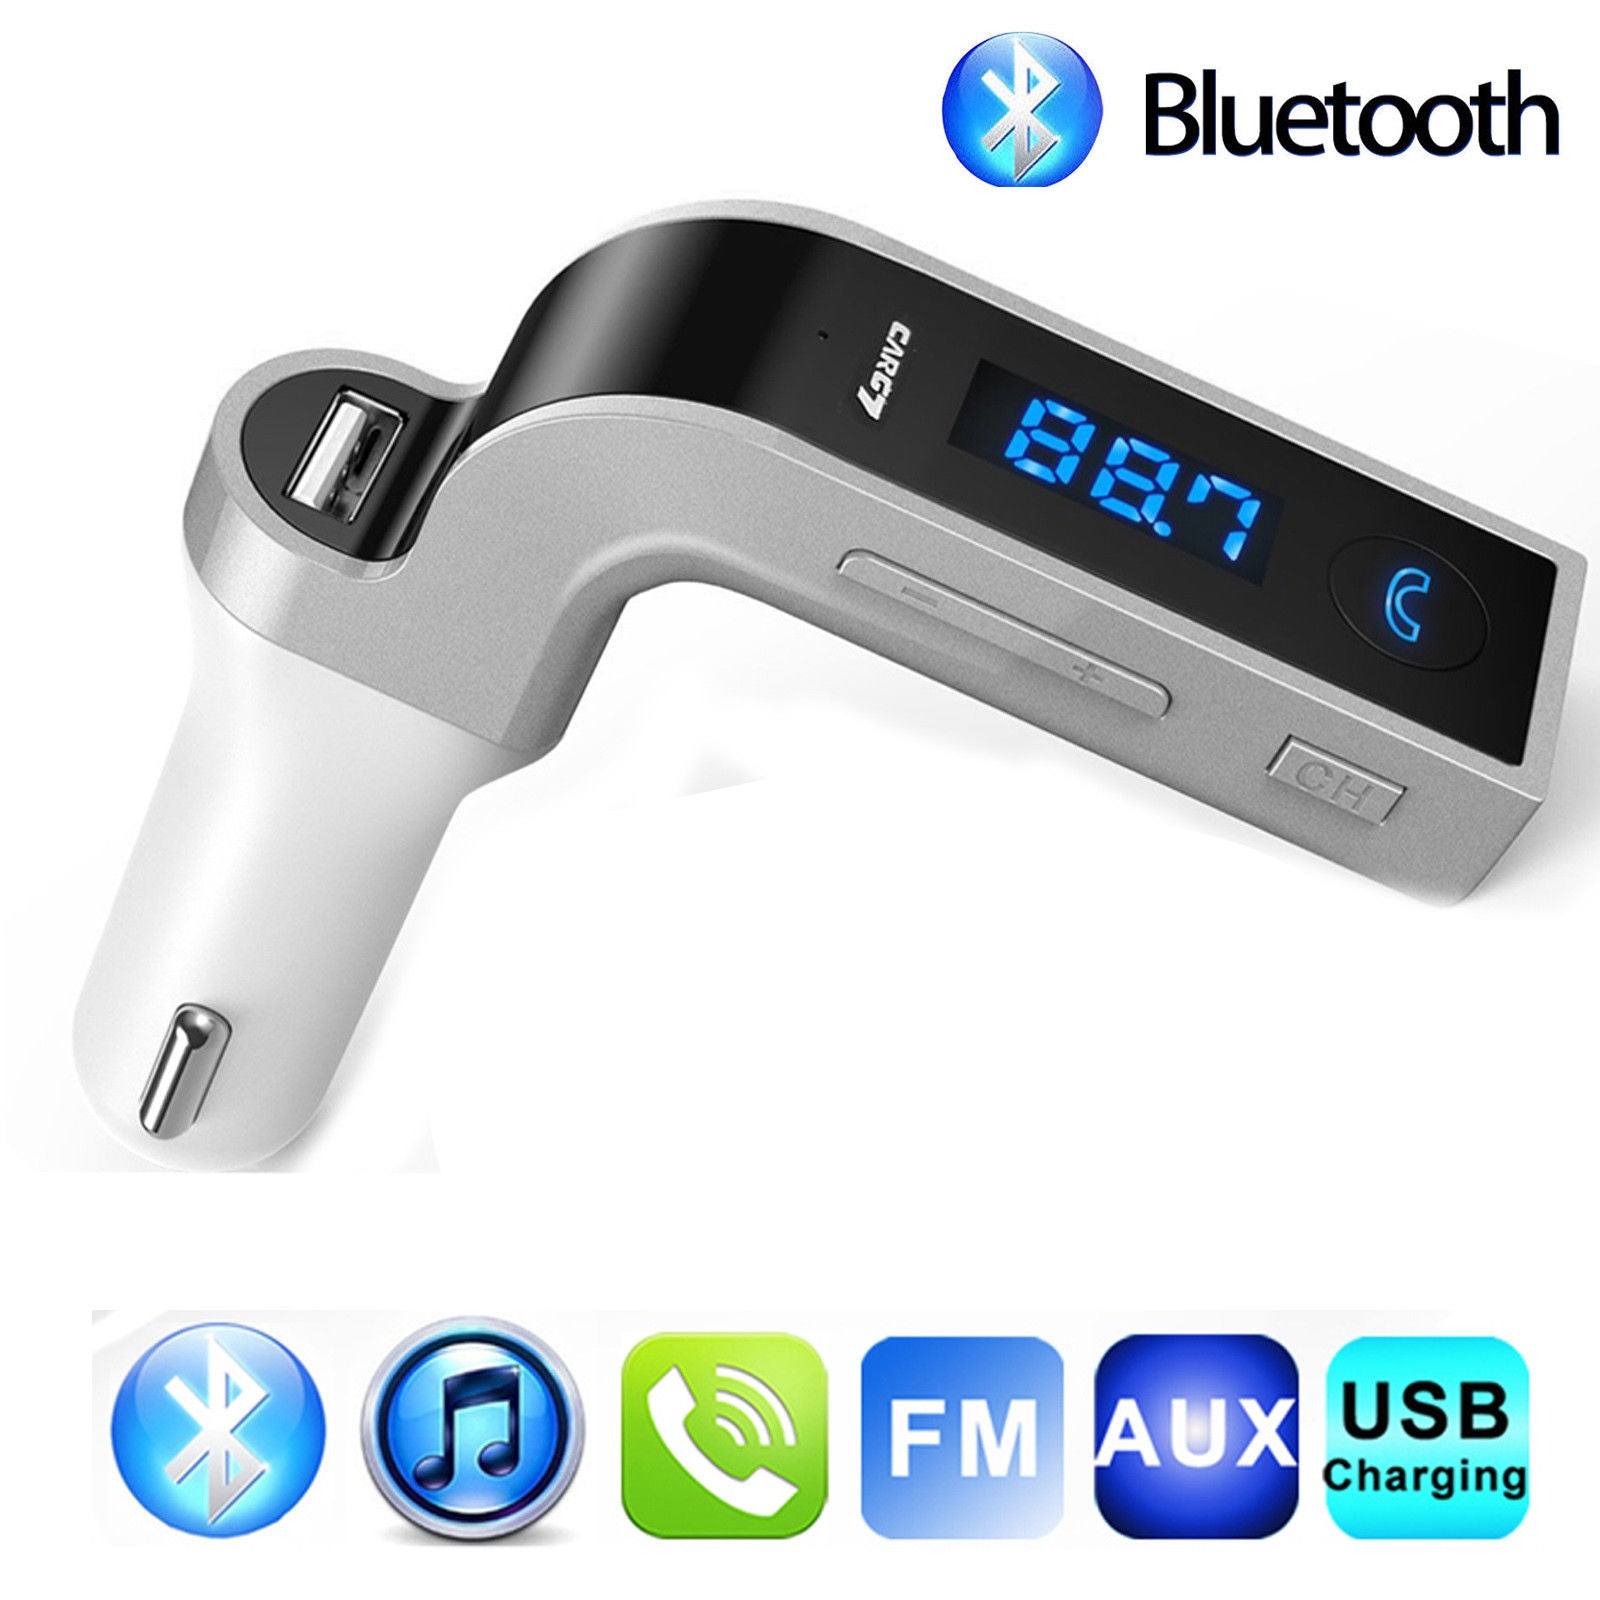 Adaptador para radio via FM con función bluetooth, USB, micro SD y AUX - CAR G7